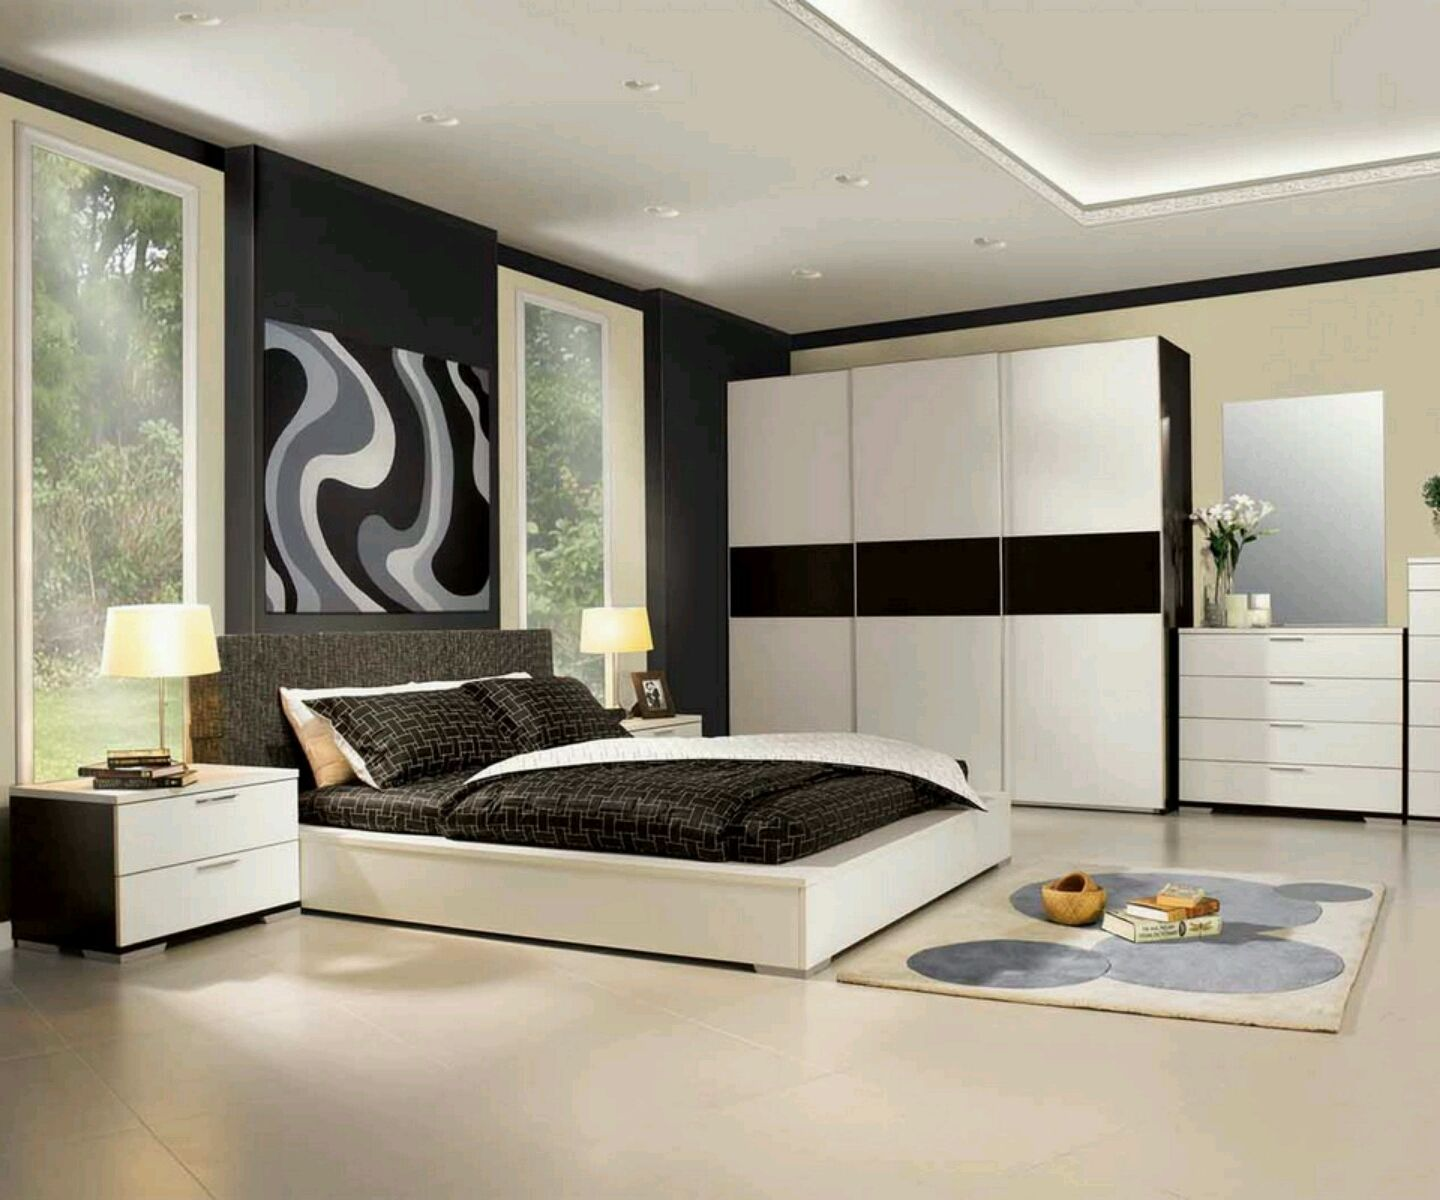 Pesona Shop Home Design  Modern luxury bedroom, Bedroom furniture